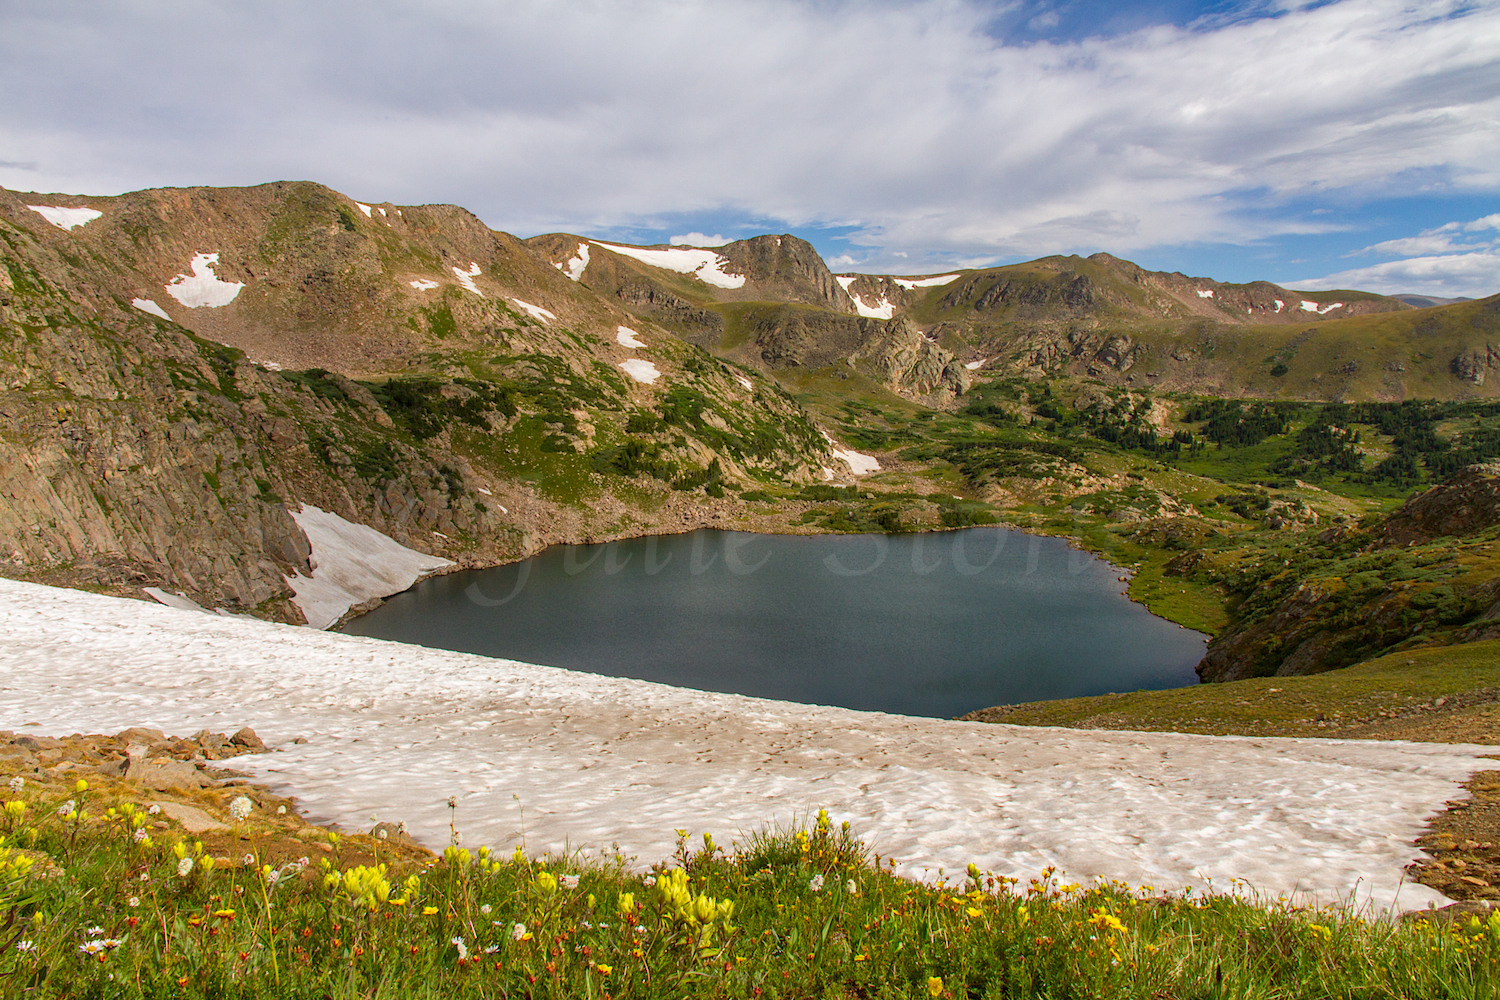 Yellow Paintbrush and Snowfield above King Lake, Image # 9669